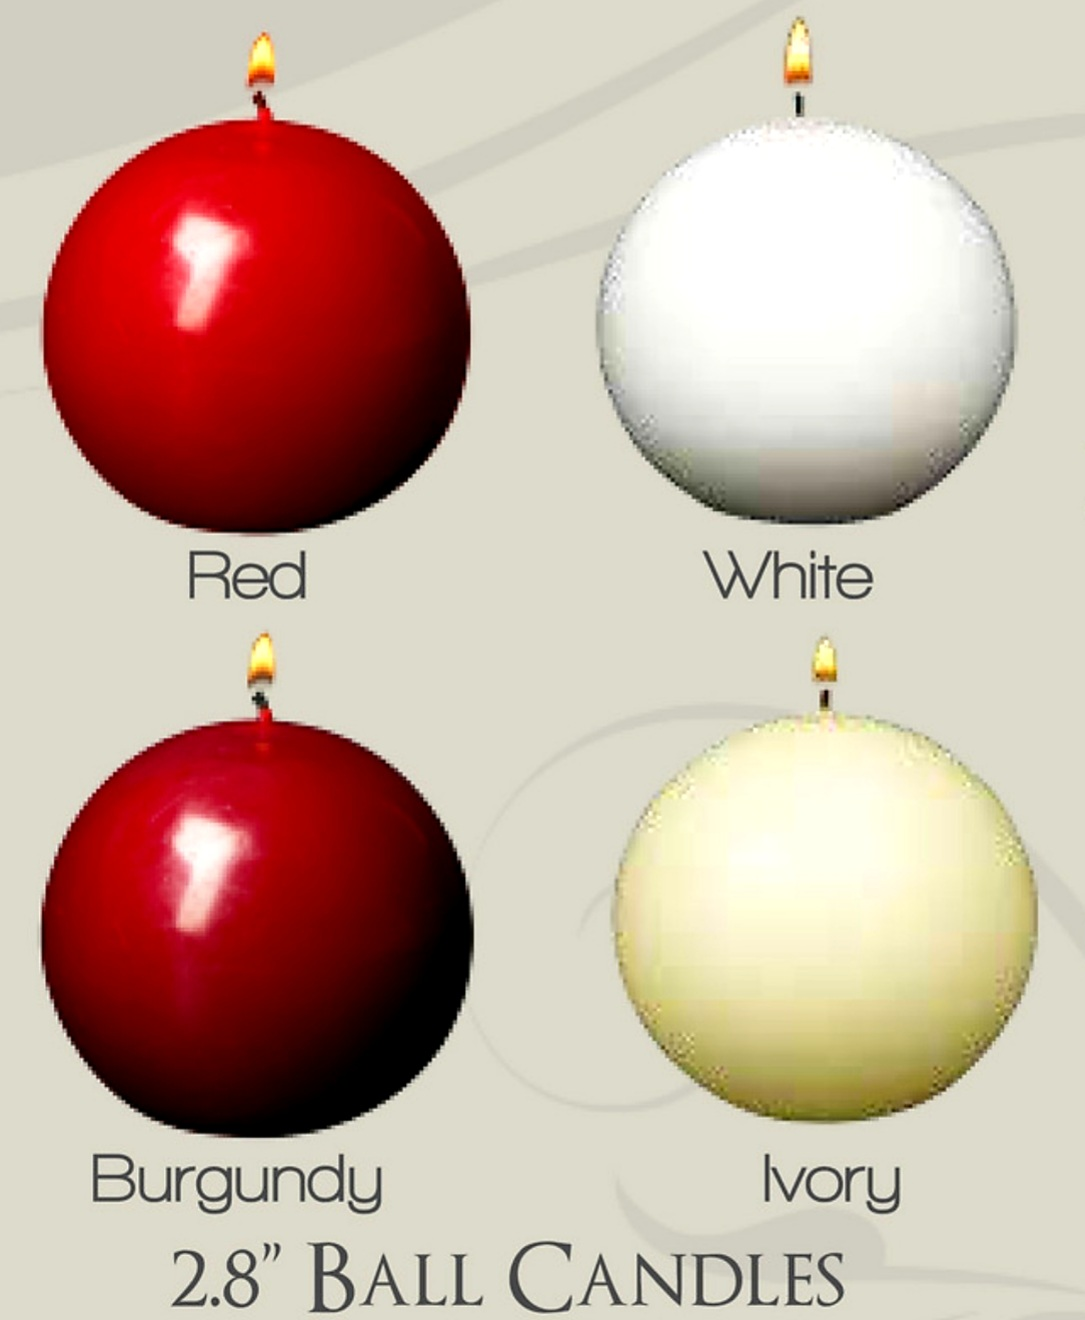 2.8 Inch Ivory, White, Red & Burgundy Ball Candles (12pcs)